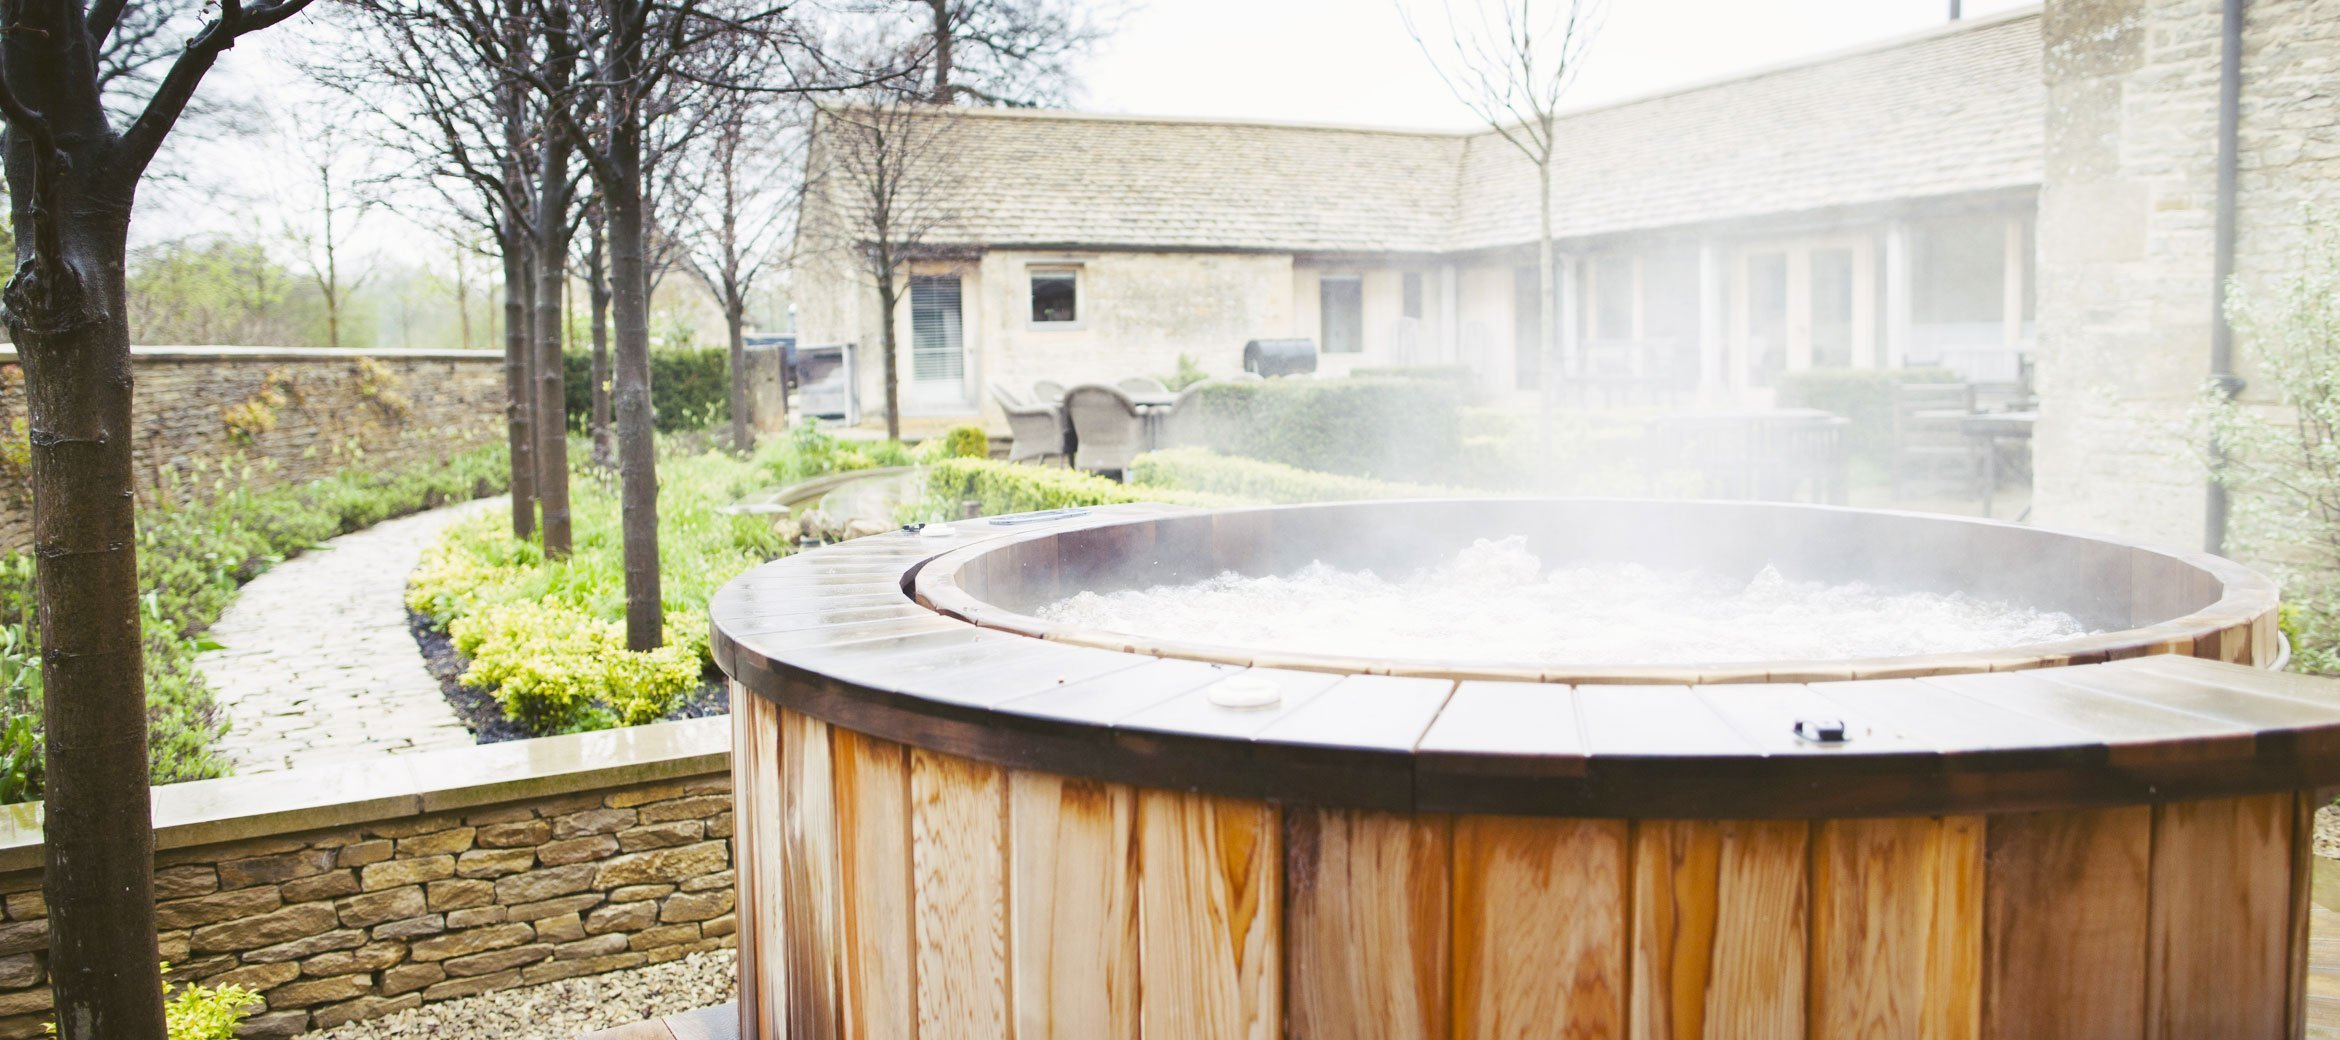 Temple-Guiting-Barn-Hot-Tub